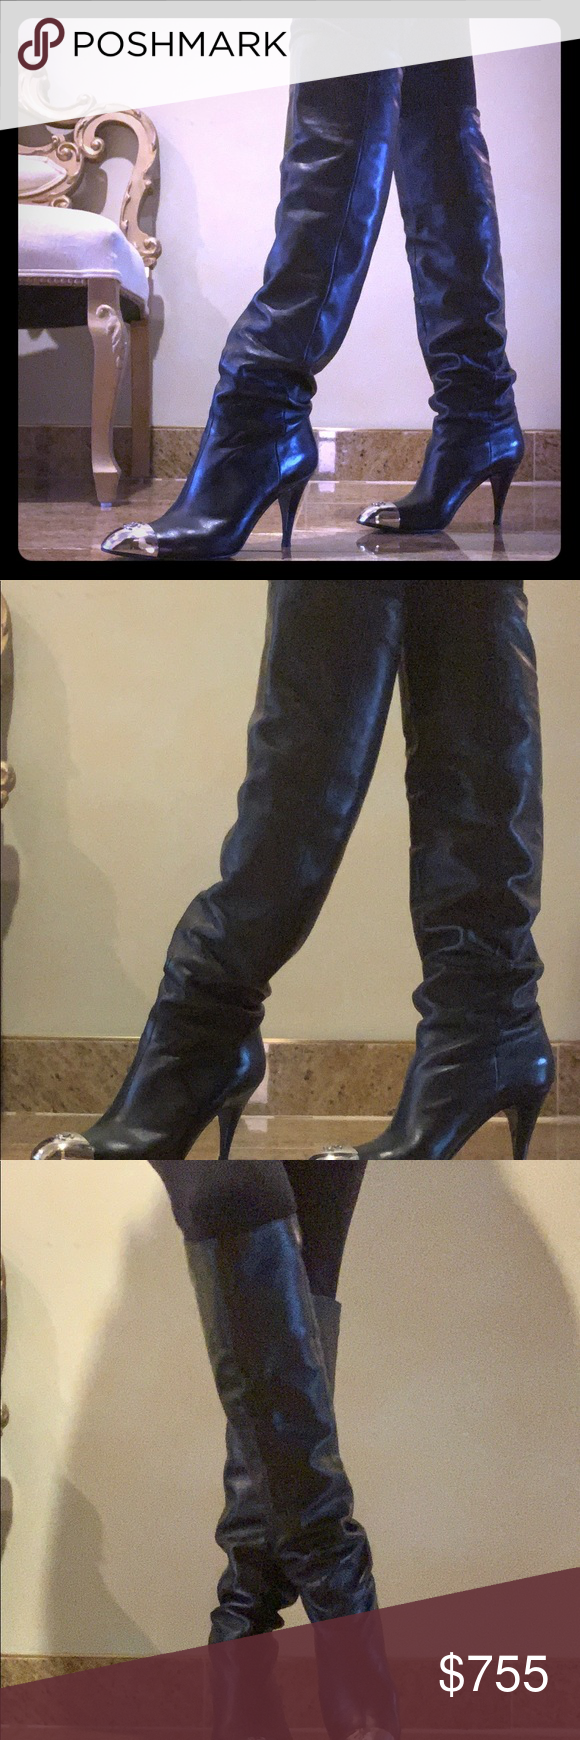 600f39c7aed Chanel boots Fabulous Chanel high boots